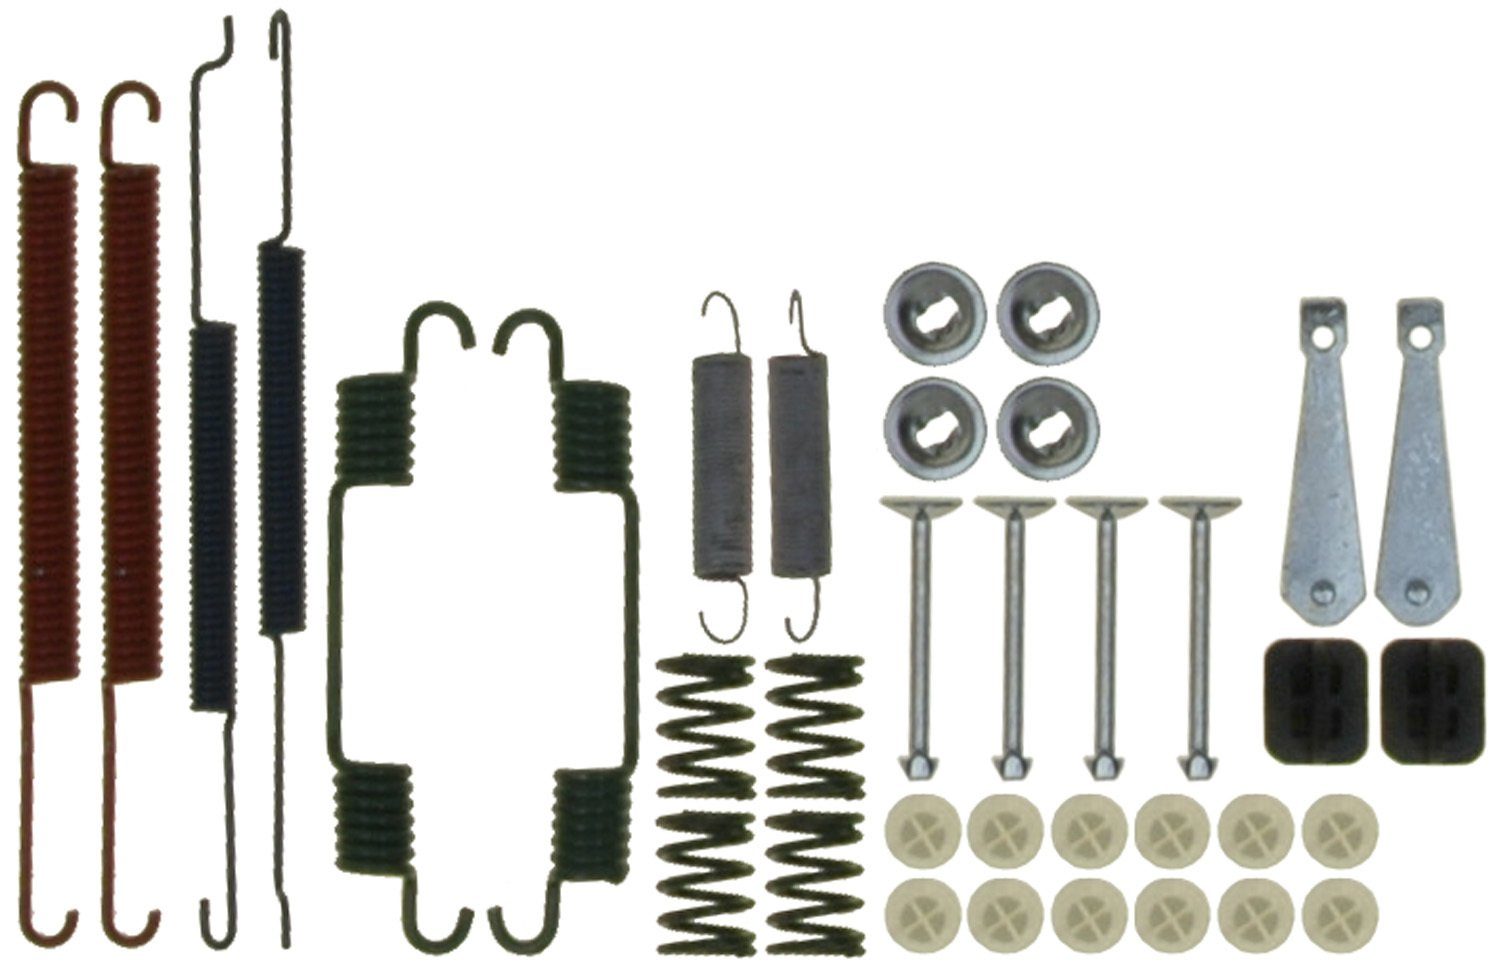 Pins ACDelco 18K17478 Professional Rear Drum Brake Hardware Kit with Springs Retainers and Covers